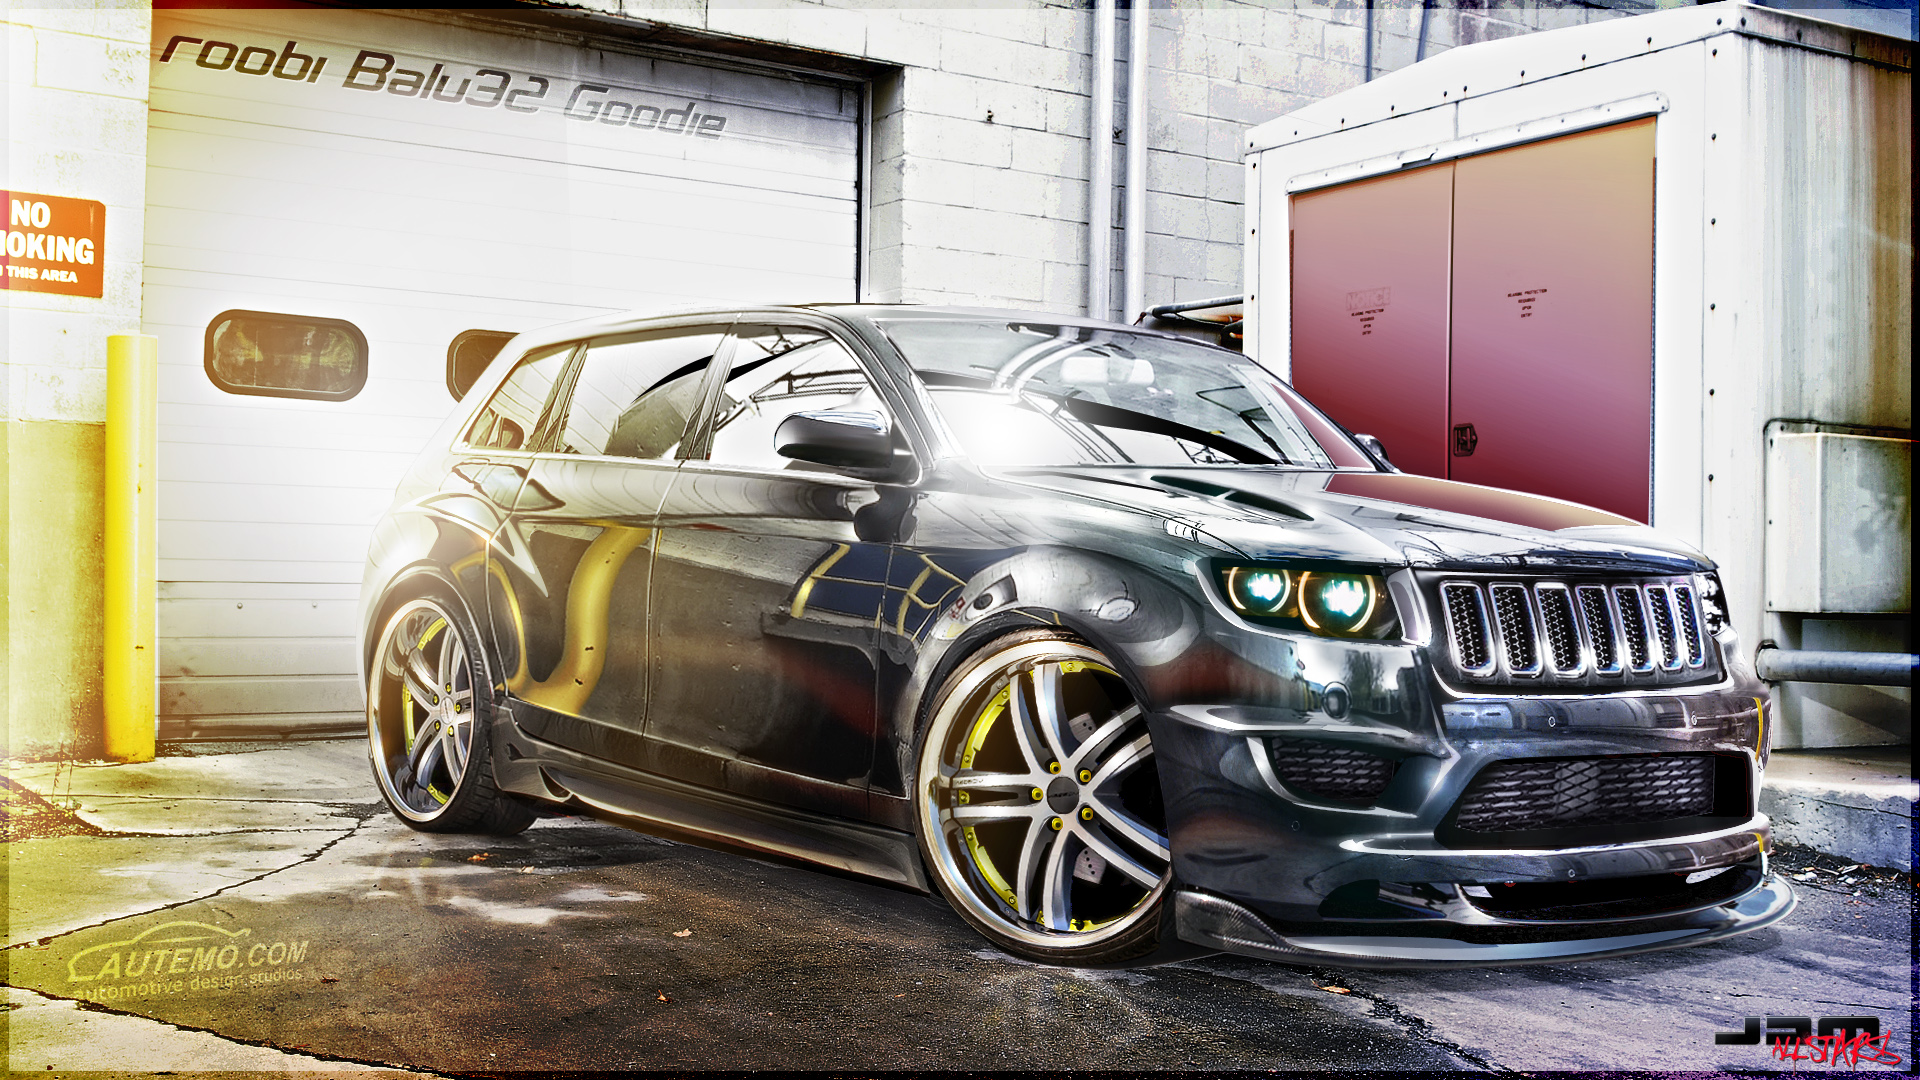 WTB'11 Jeep Grand Cherokee by roobi